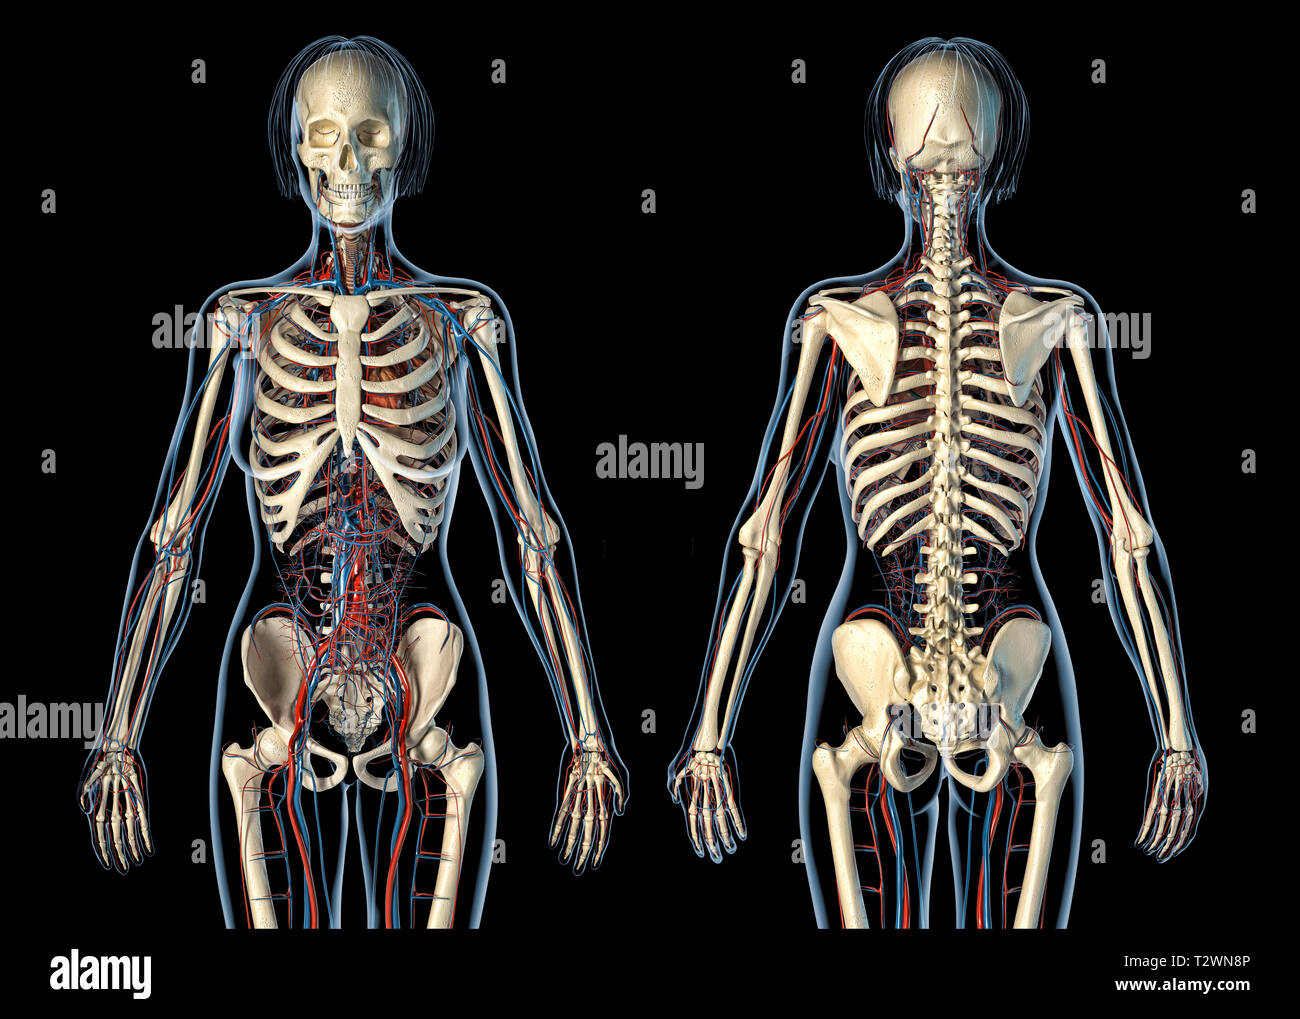 Woman anatomy cardiovascular system with skeleton, rear and front views. On black background. - Stock Image